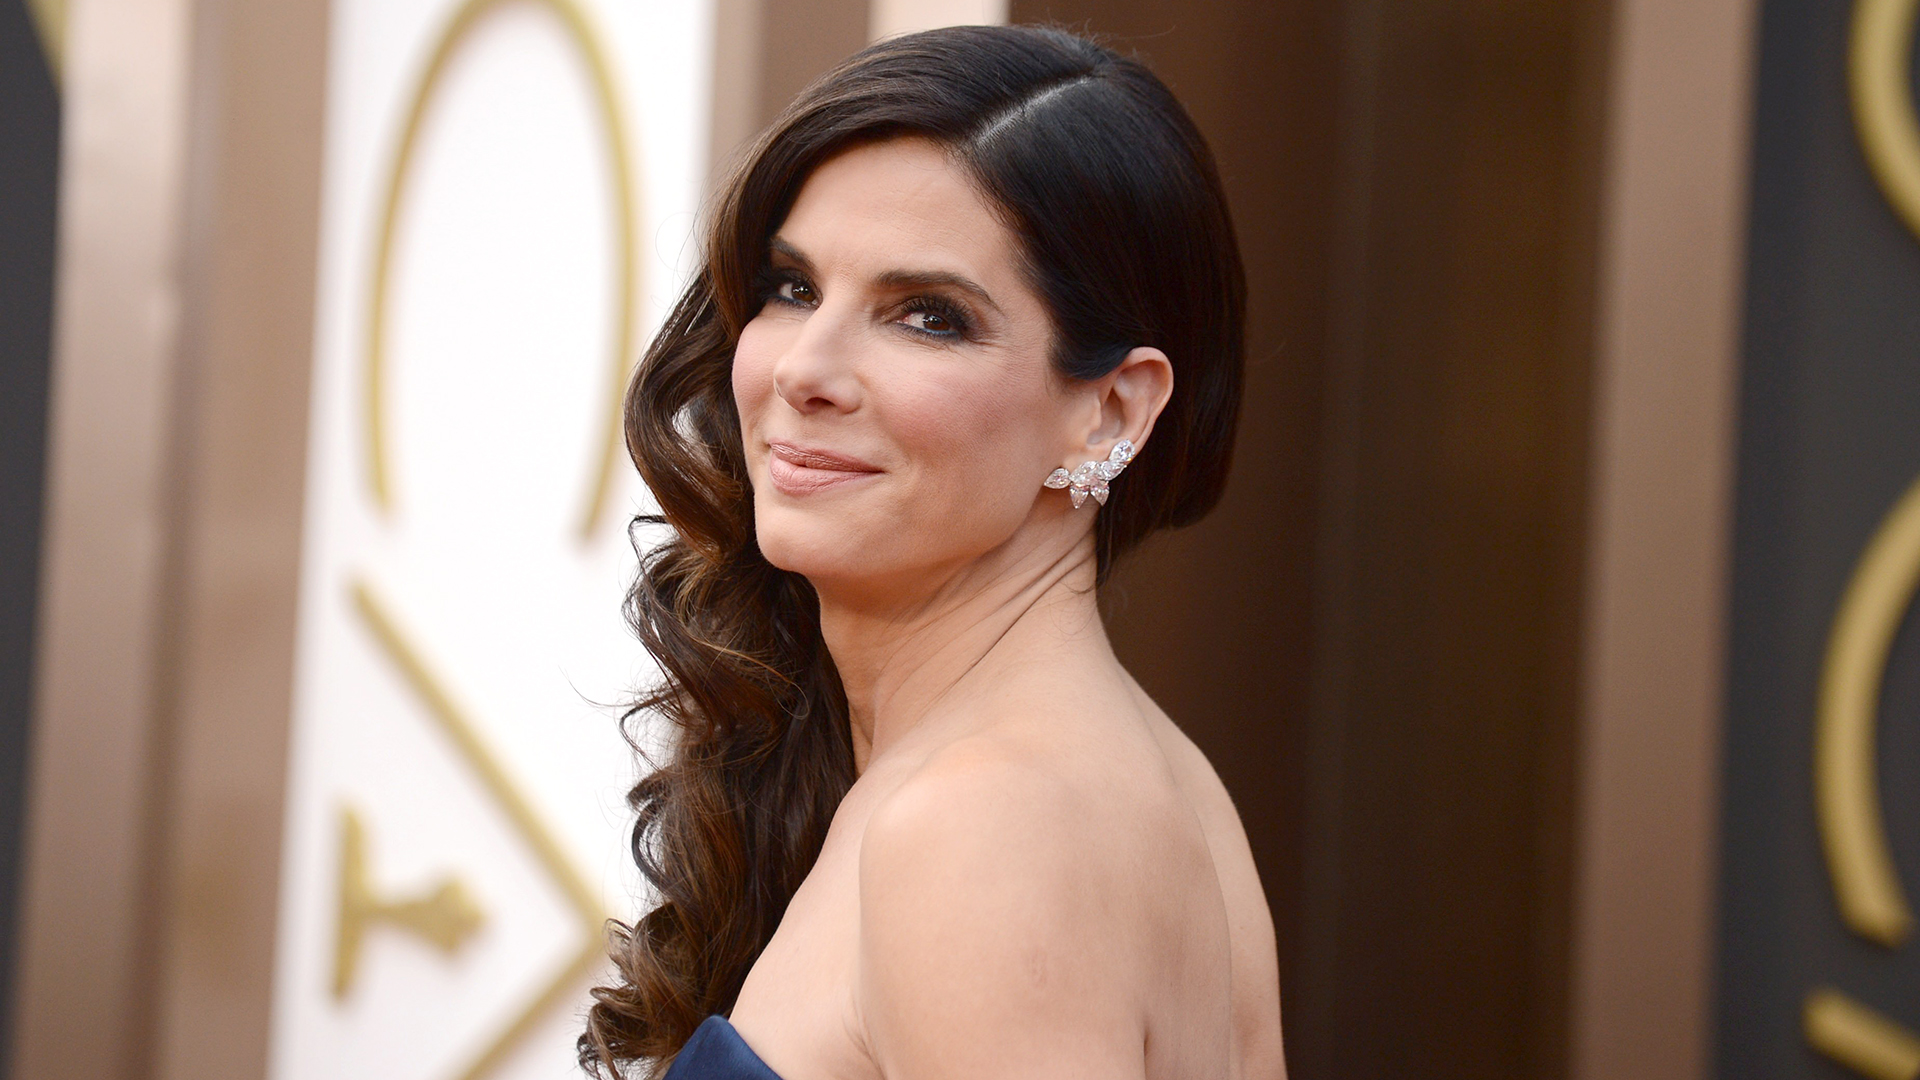 sandra bullock is most beautiful woman says people